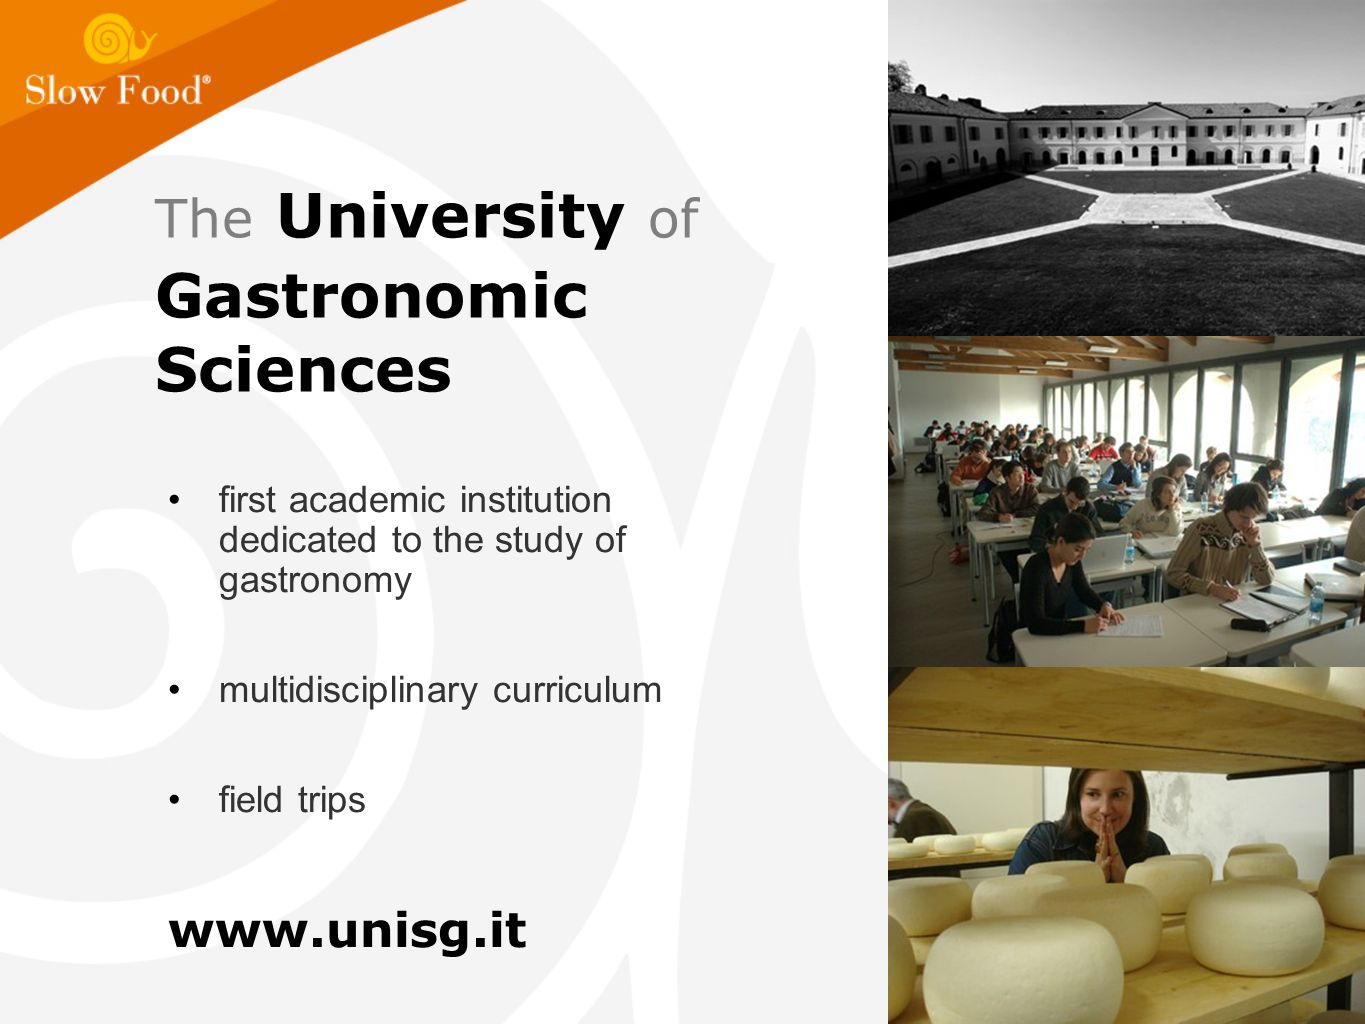 The University of Gastronomic Sciences first academic institution dedicated to the study of gastronomy multidisciplinary curriculum field trips